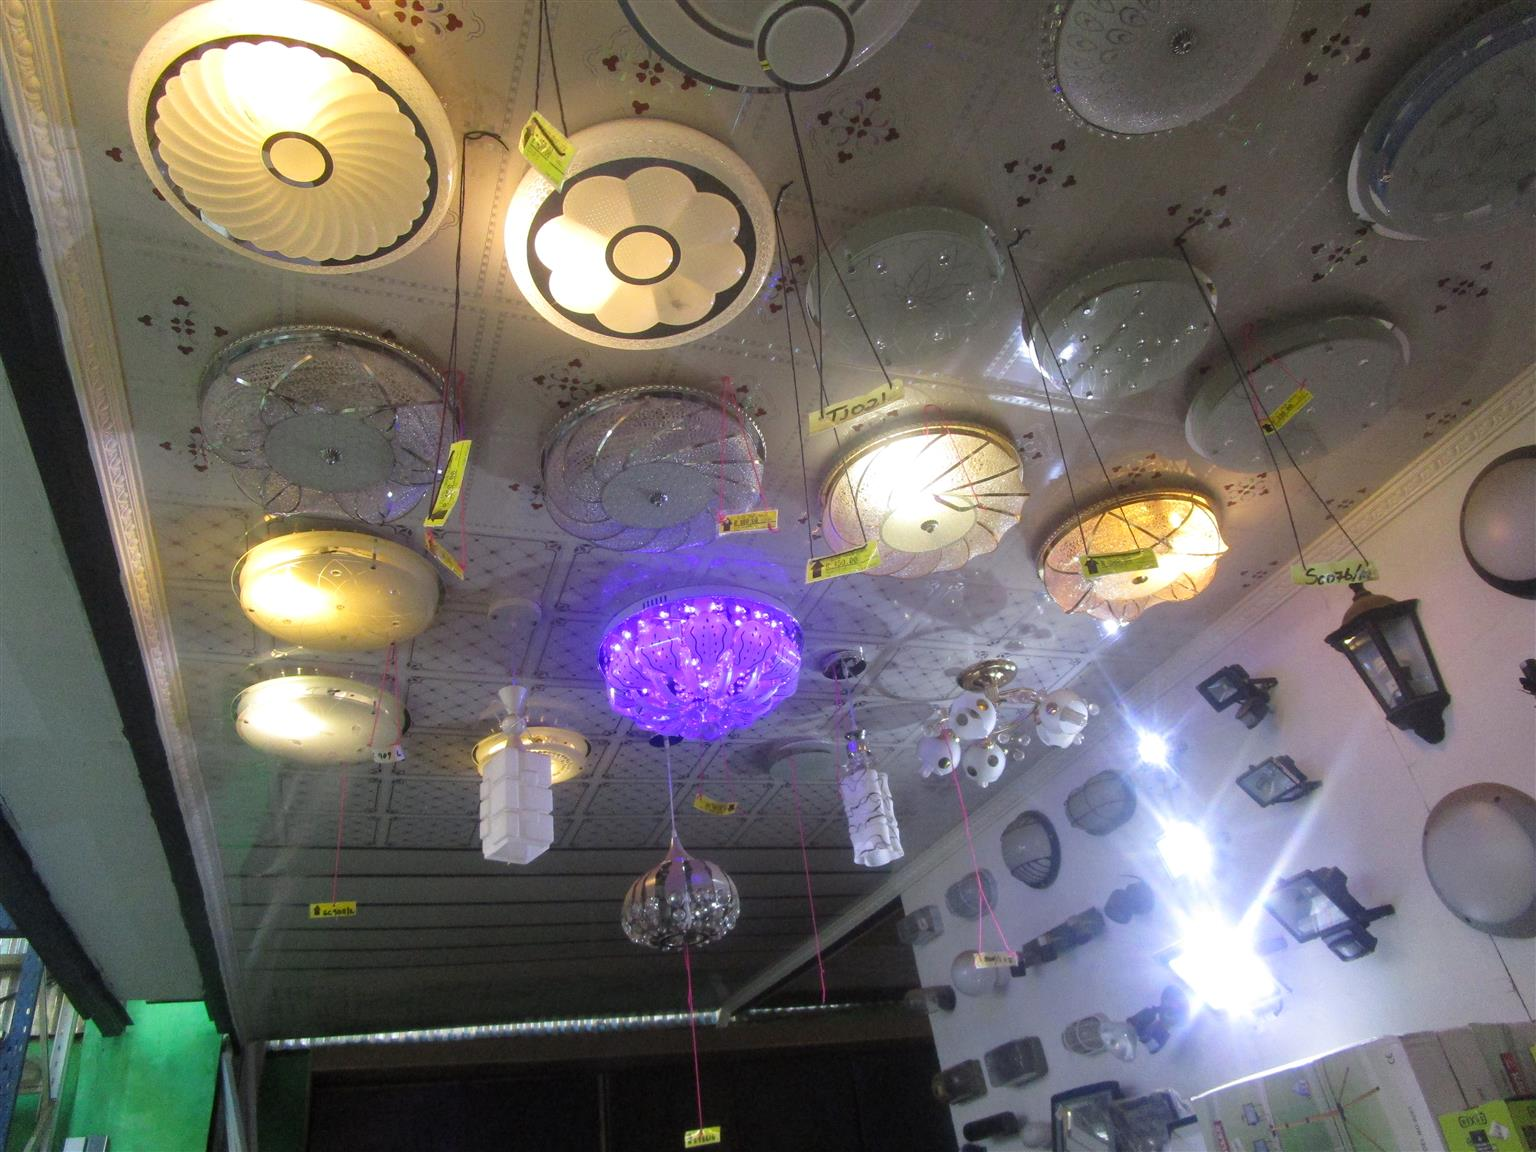 Variety of ceiling lights